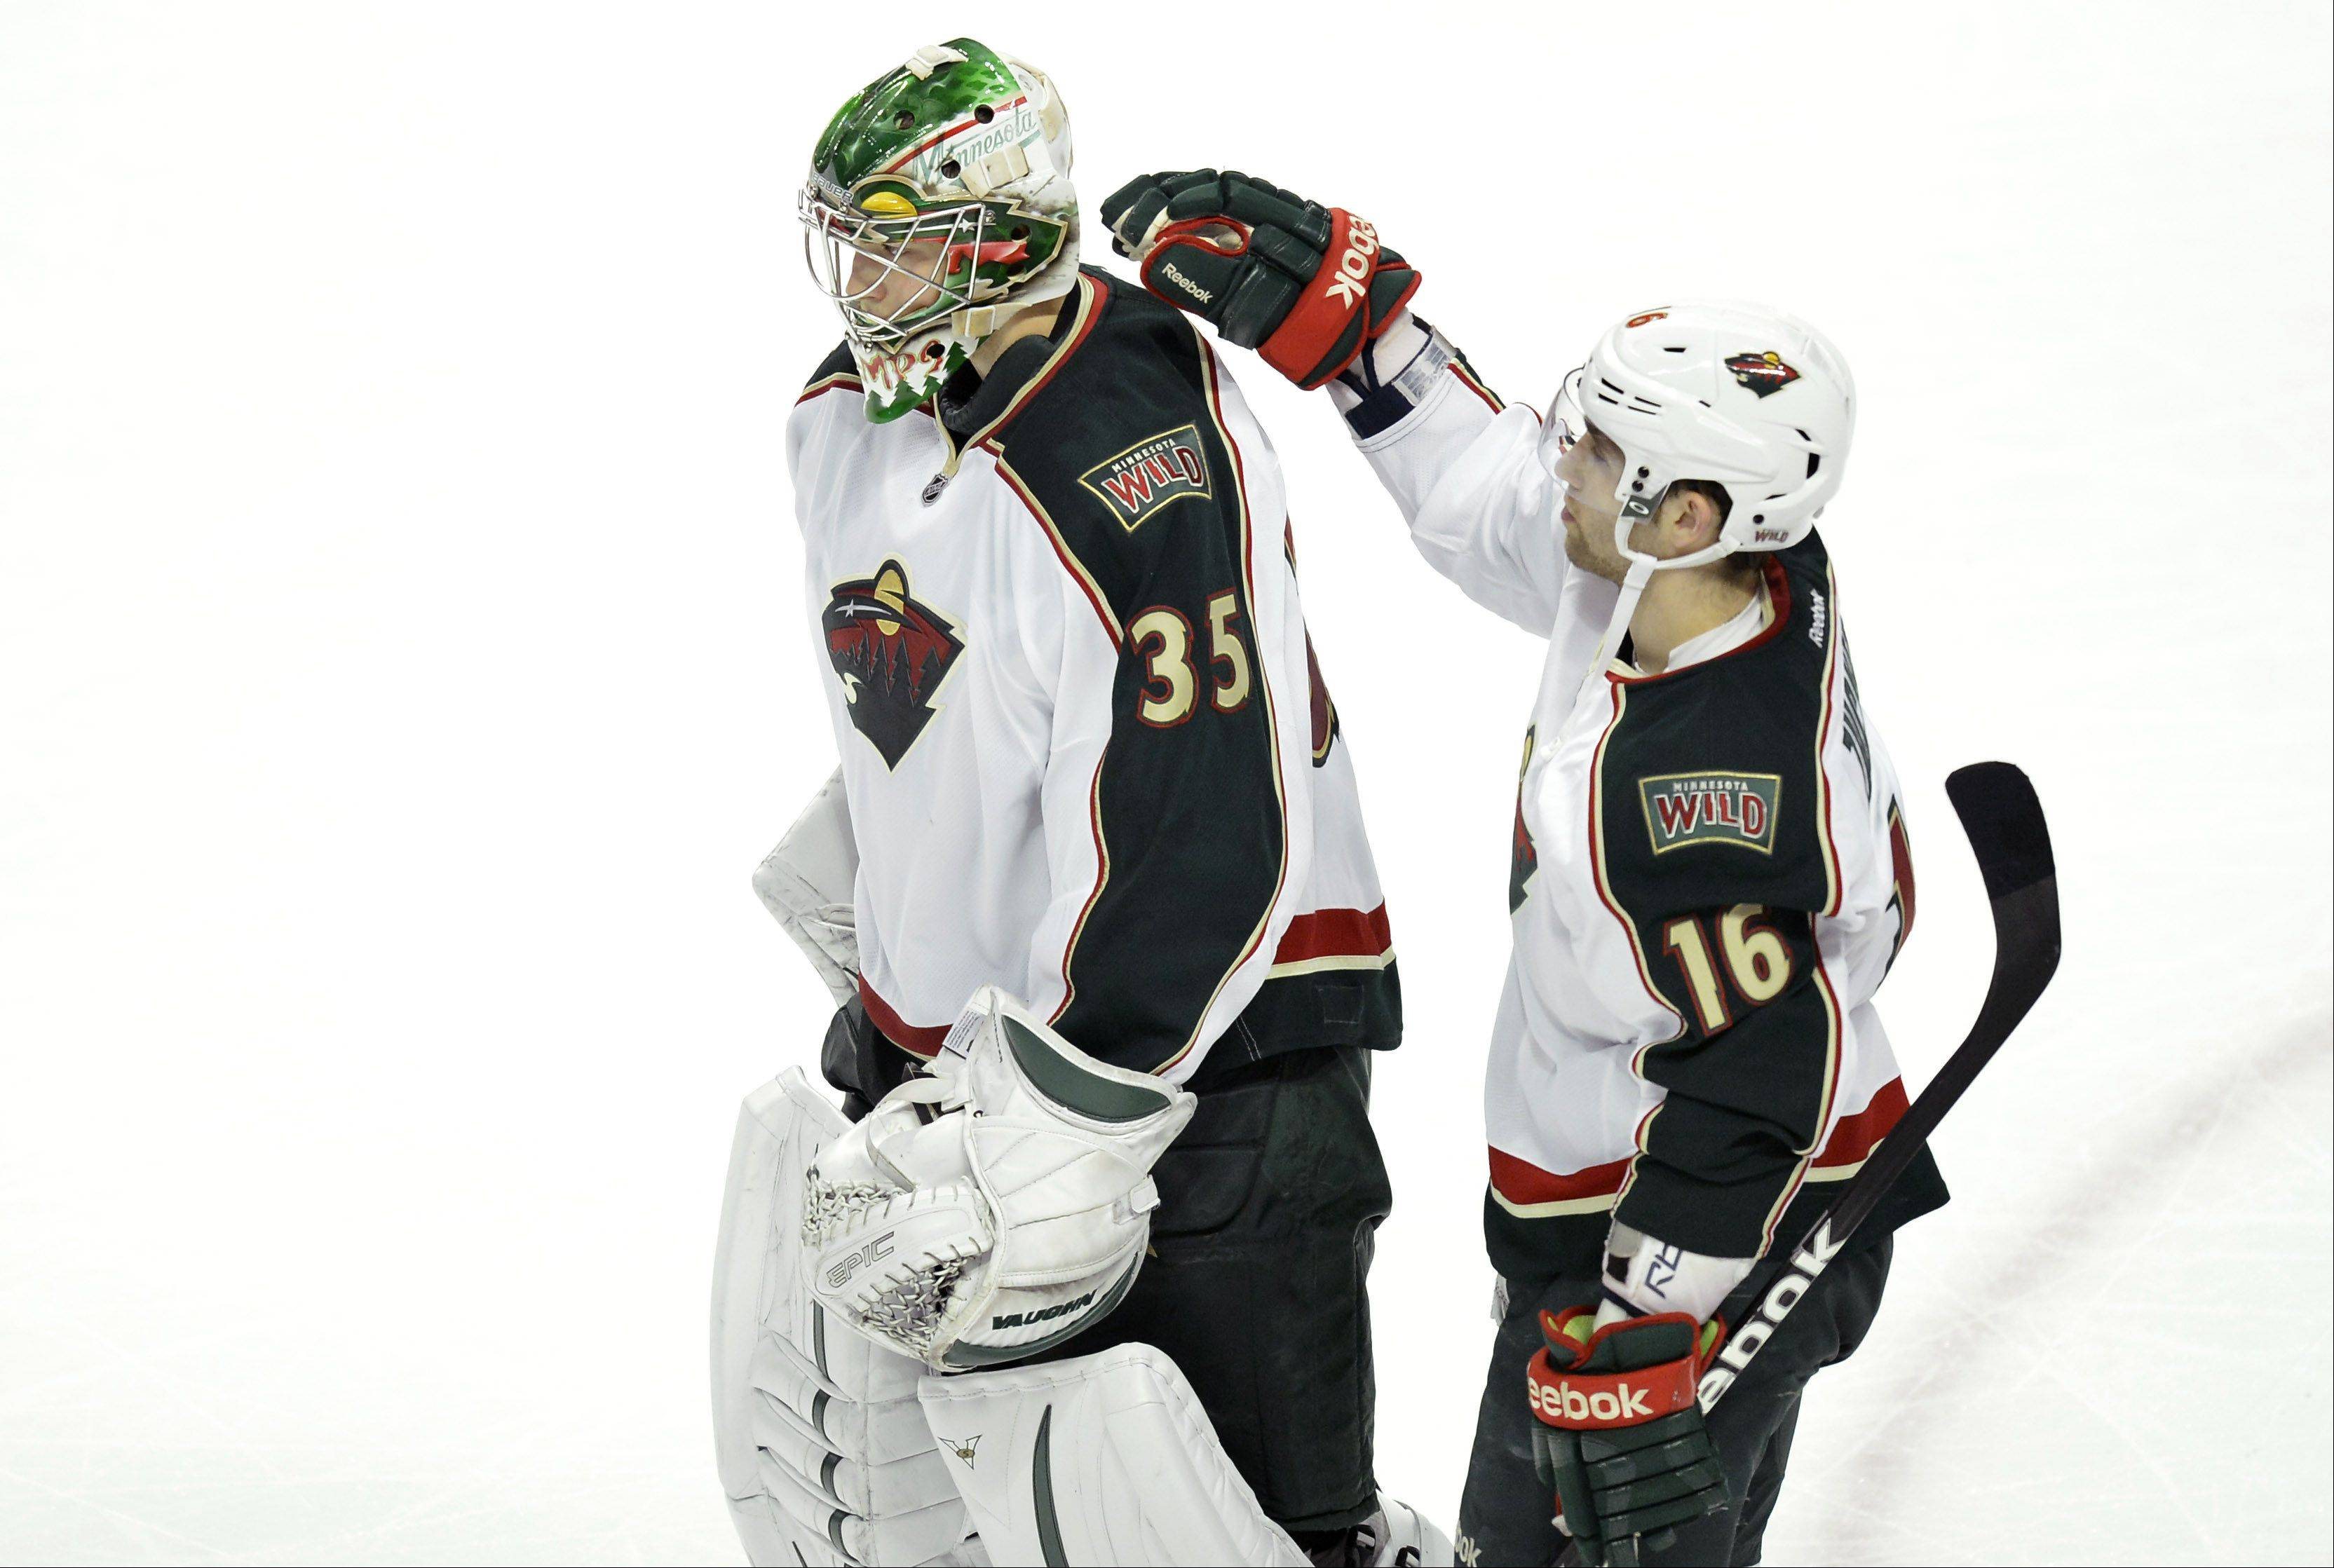 Minnesota Wild left wing Jason Zucker, left, pats goalie Darcy Kuemper on the back after they lost to the Chicago Blackhawks.